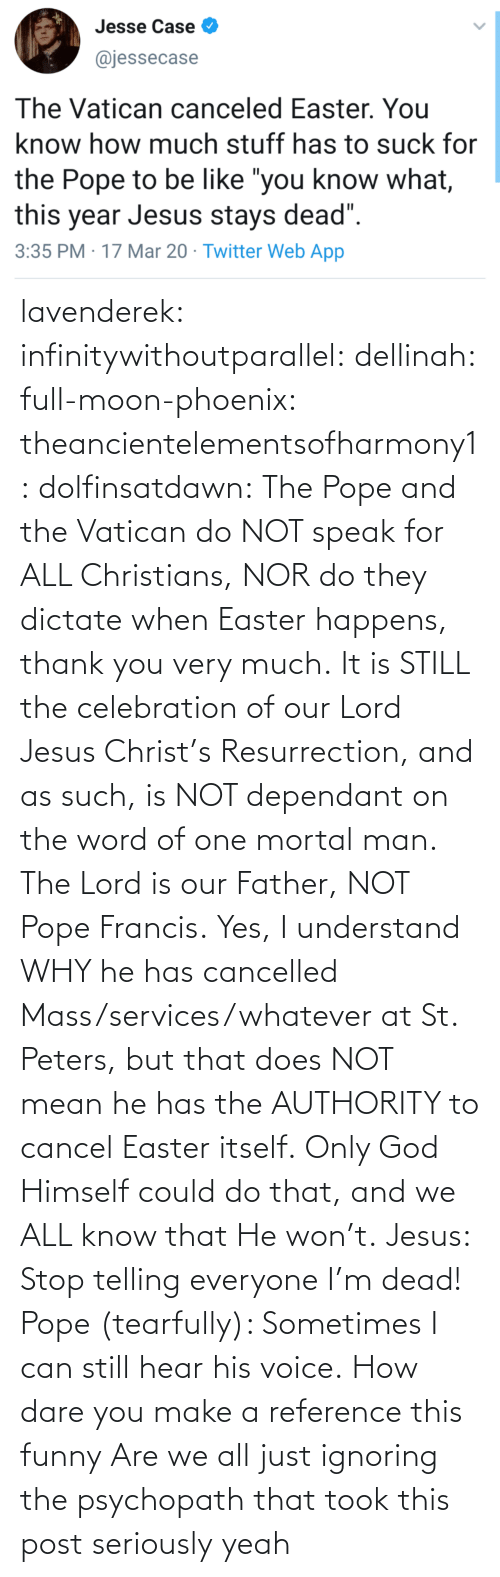 When: lavenderek: infinitywithoutparallel:  dellinah:  full-moon-phoenix:   theancientelementsofharmony1:  dolfinsatdawn:    The Pope and the Vatican do NOT speak for ALL Christians, NOR do they dictate when Easter happens, thank you very much. It is STILL the celebration of our Lord Jesus Christ's Resurrection, and as such, is NOT dependant on the word of one mortal man. The Lord is our Father, NOT Pope Francis. Yes, I understand WHY he has cancelled Mass/services/whatever at St. Peters, but that does NOT mean he has the AUTHORITY to cancel Easter itself. Only God Himself could do that, and we ALL know that He won't.    Jesus: Stop telling everyone I'm dead! Pope (tearfully): Sometimes I can still hear his voice.    How dare you make a reference this funny    Are we all just ignoring the psychopath that took this post seriously     yeah